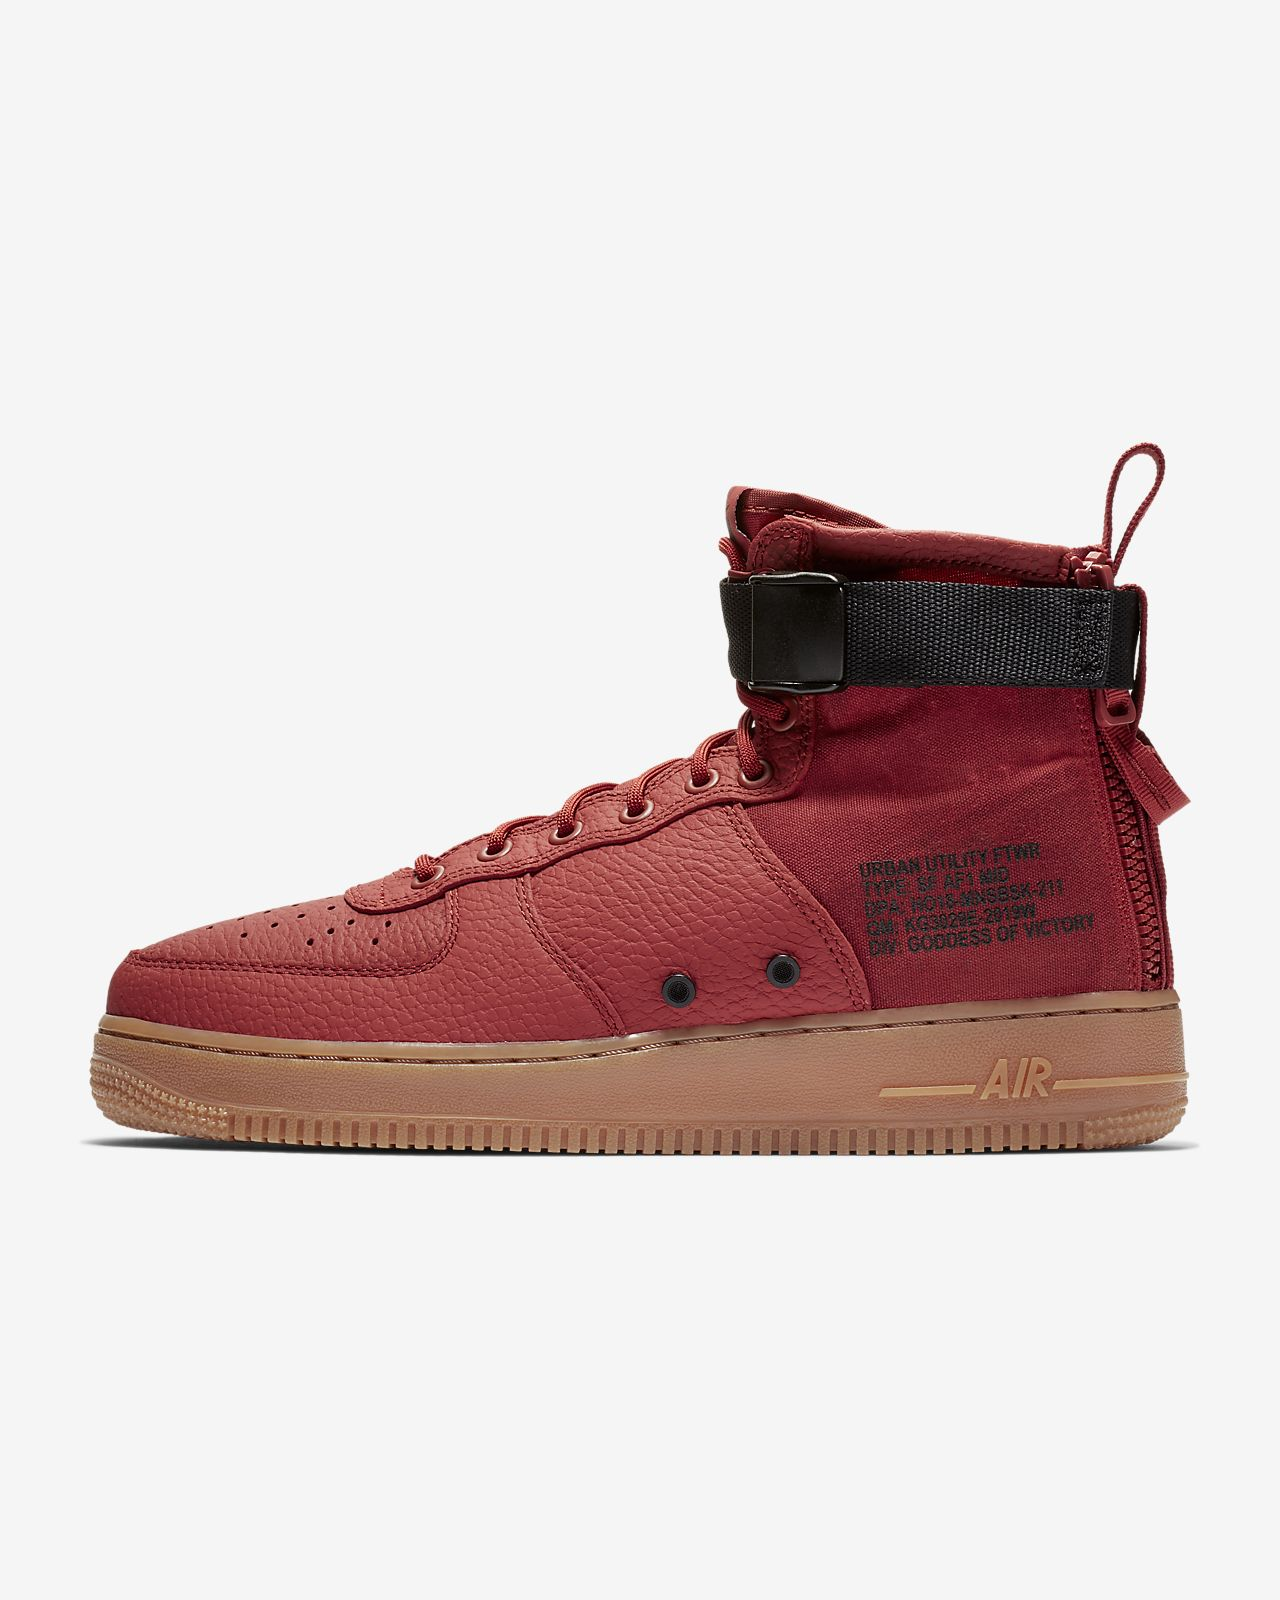 Nike SF Air Force 1 Mid Mens Shoe